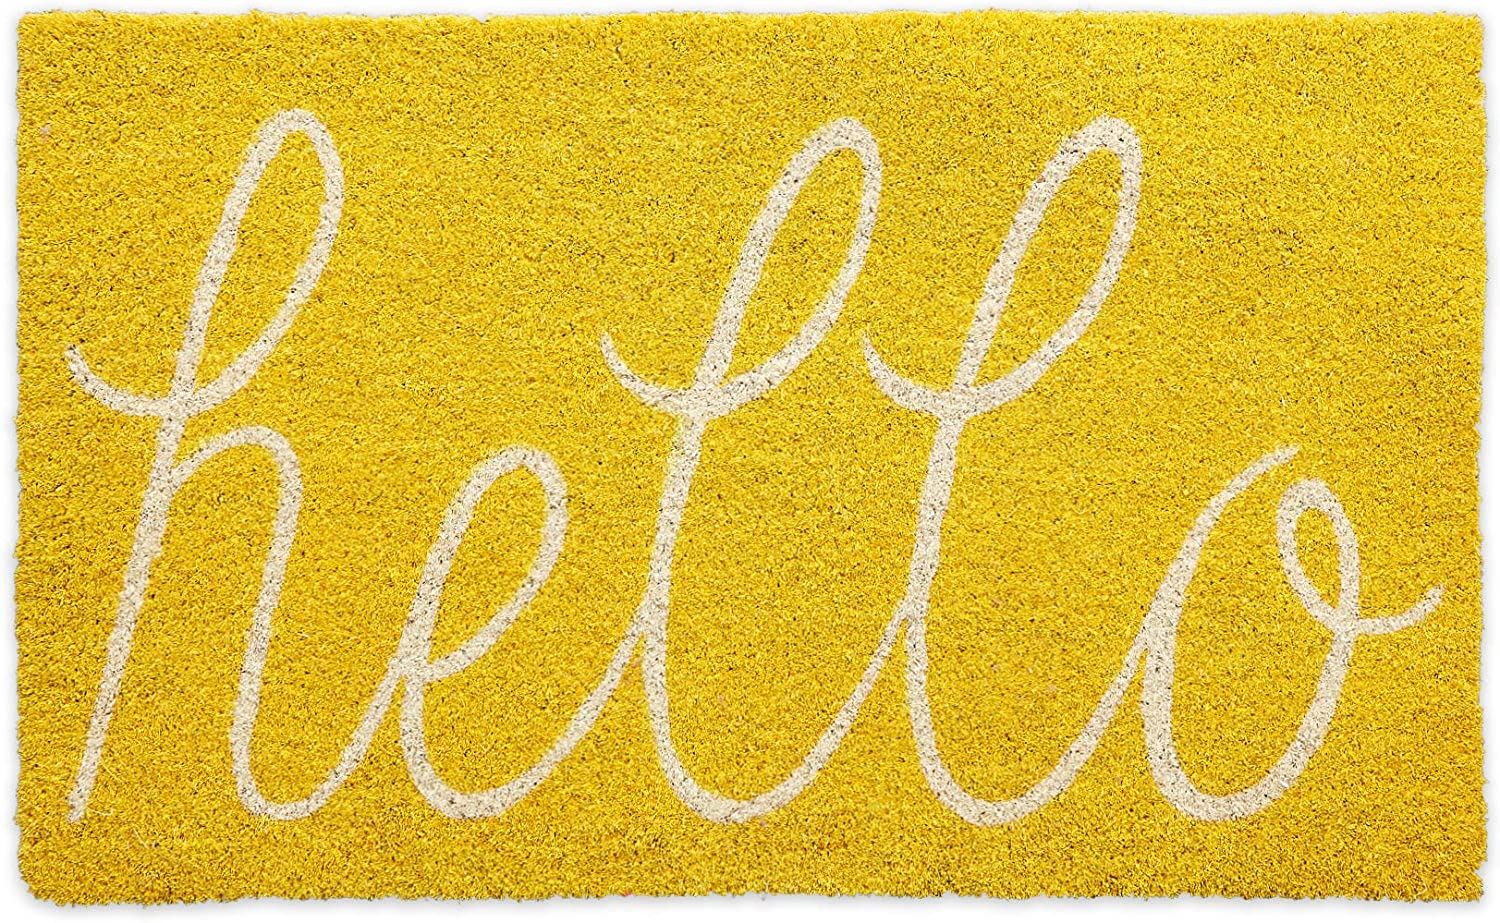 DII Hello Coir Fiber Doormat Non-Slip Durable Outdoor/Indoor, Pet Friendly, 18x30, Yellow